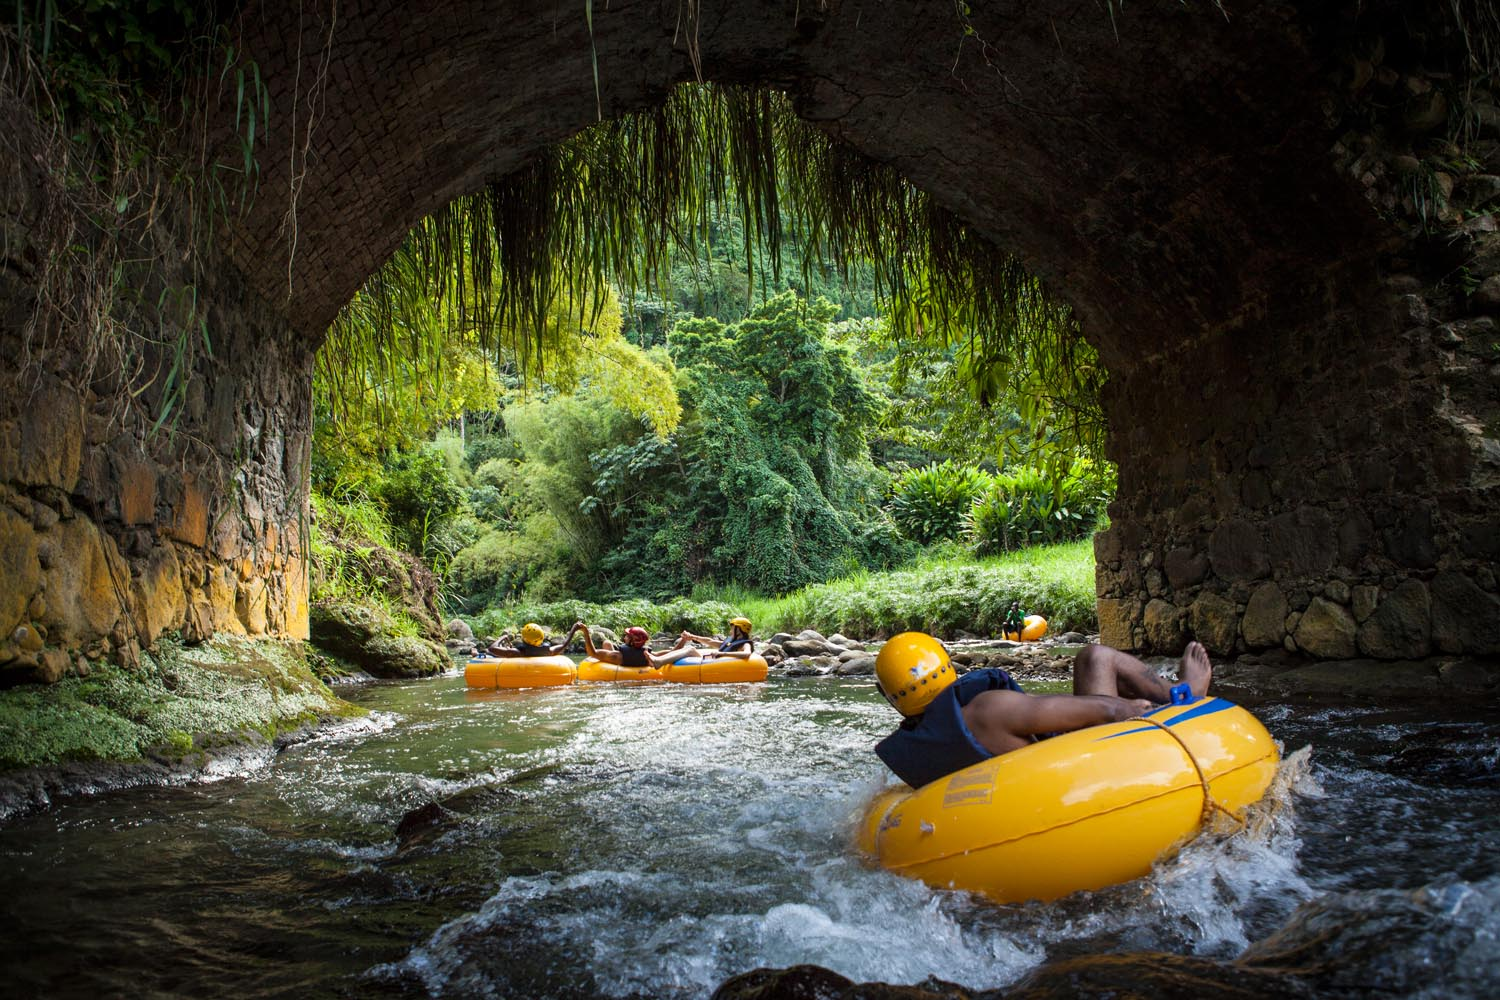 Adventure afloat on one of Grenada's many rivers. Photo courtesy Pure Grenada Tourism Authority